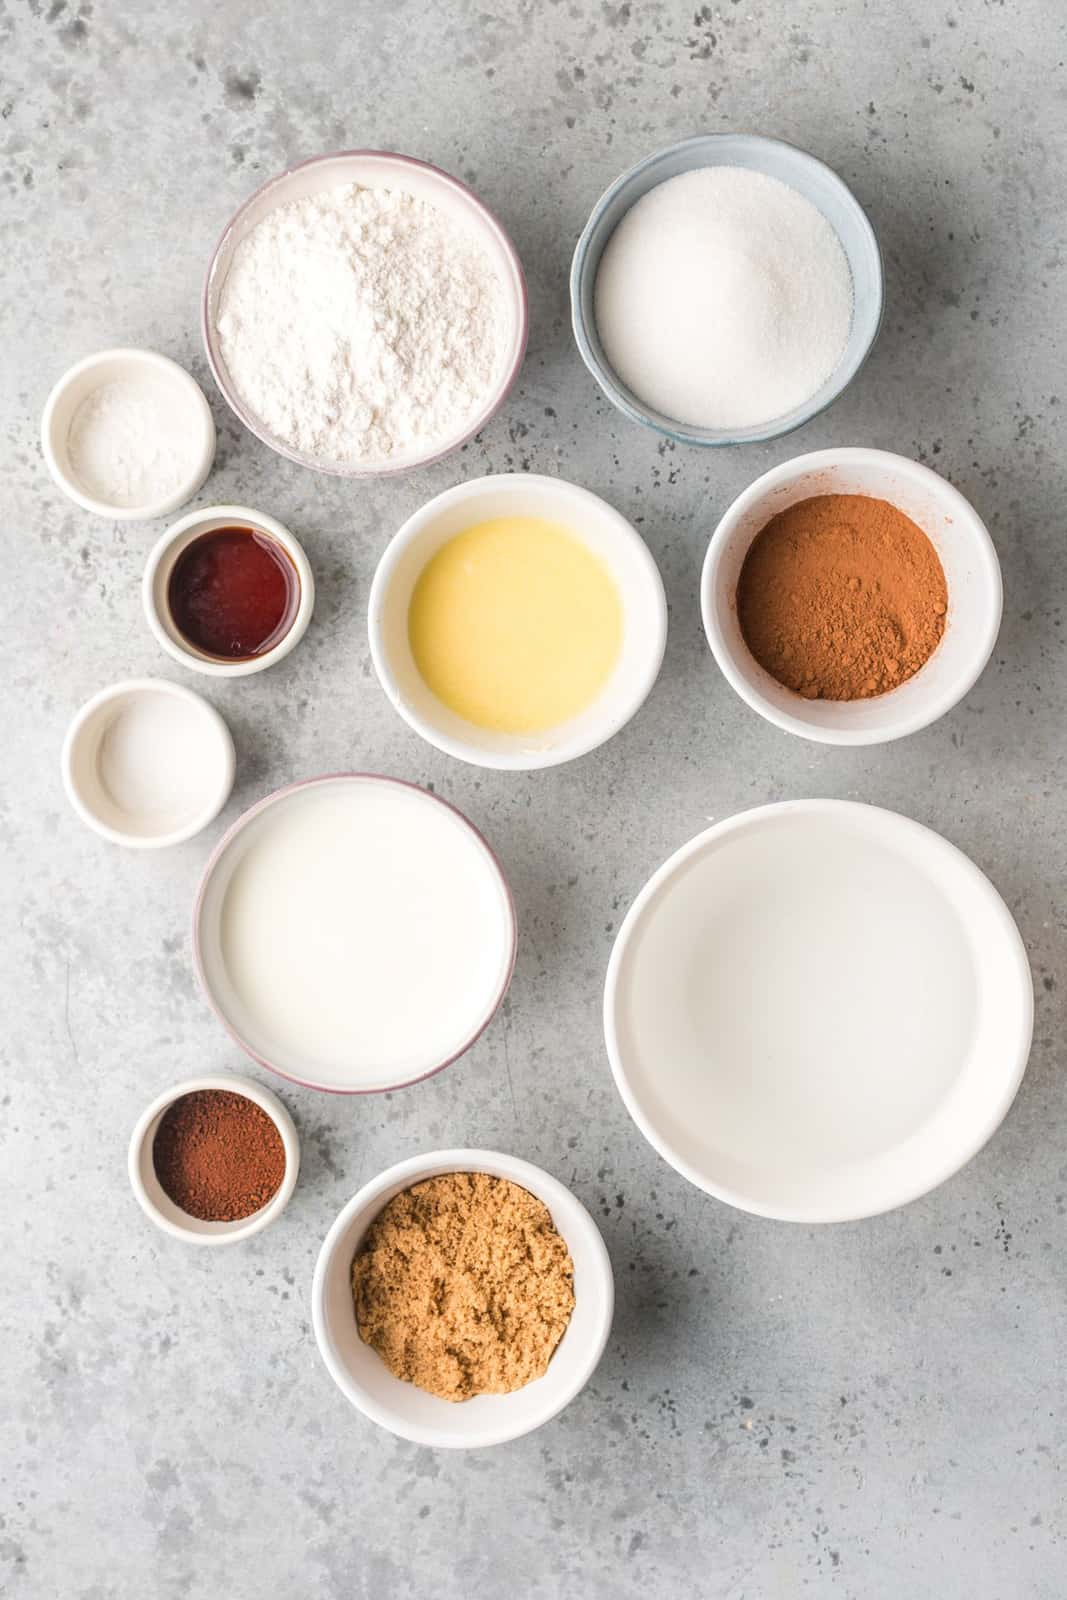 Ingredients needed to make a Pudding Cake